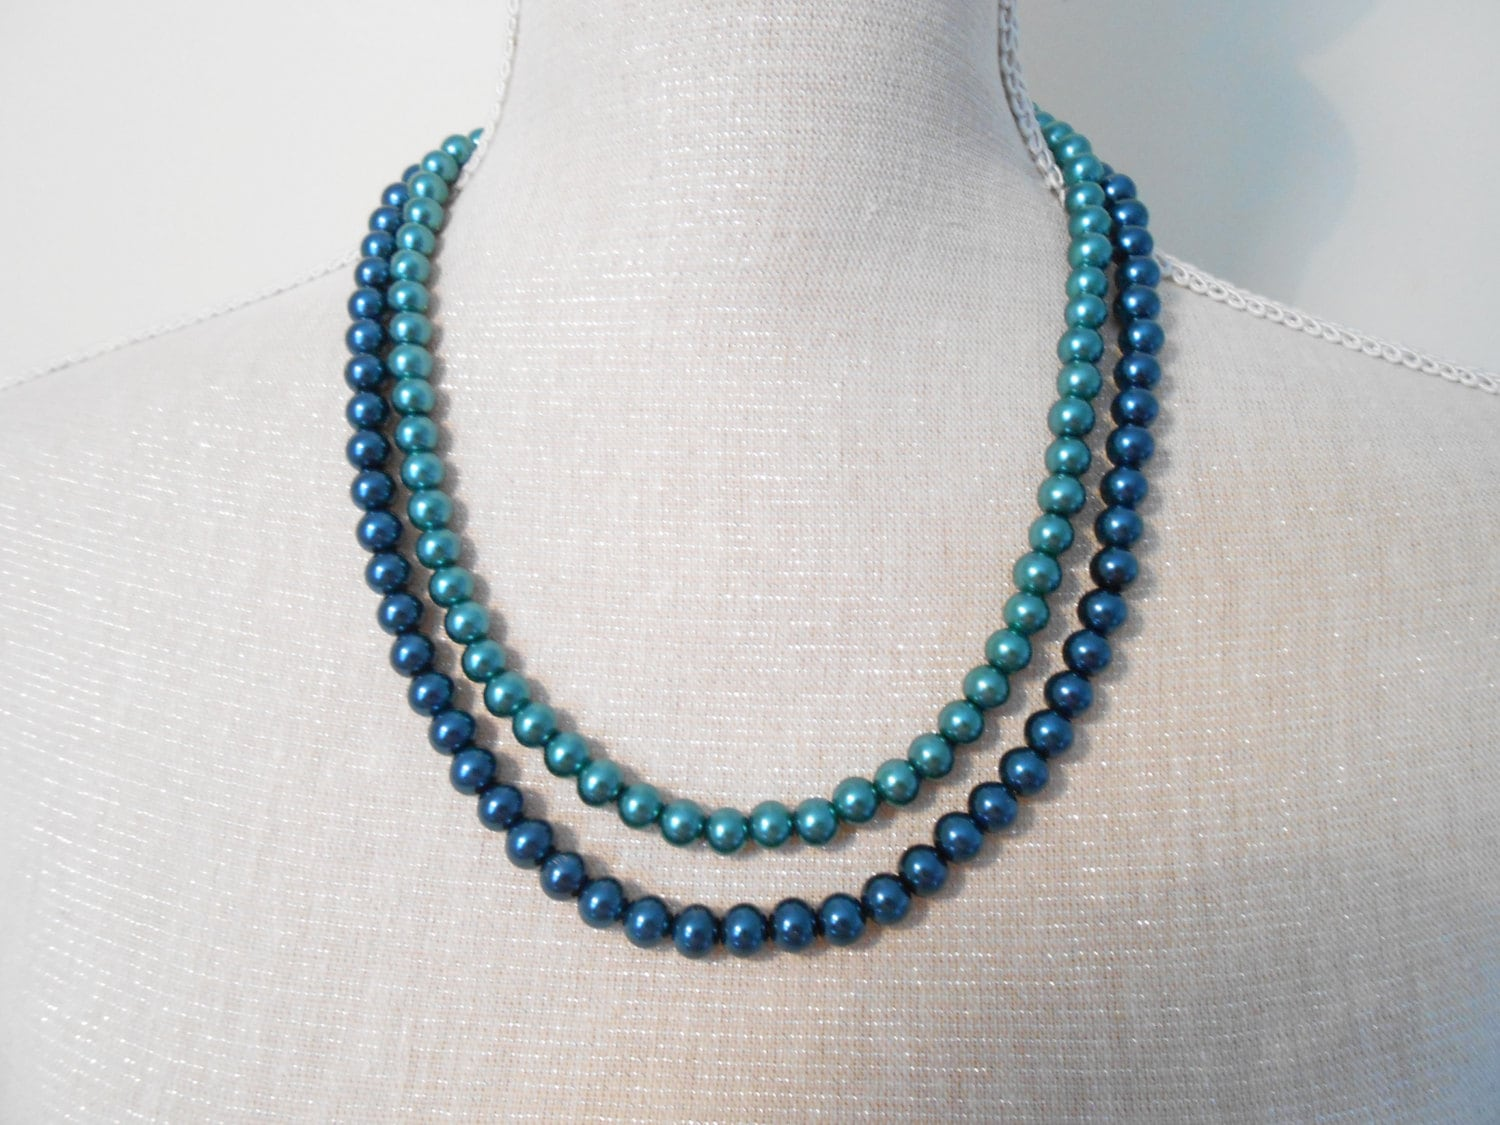 green blue pearl necklace last minute gifts 10 20 30